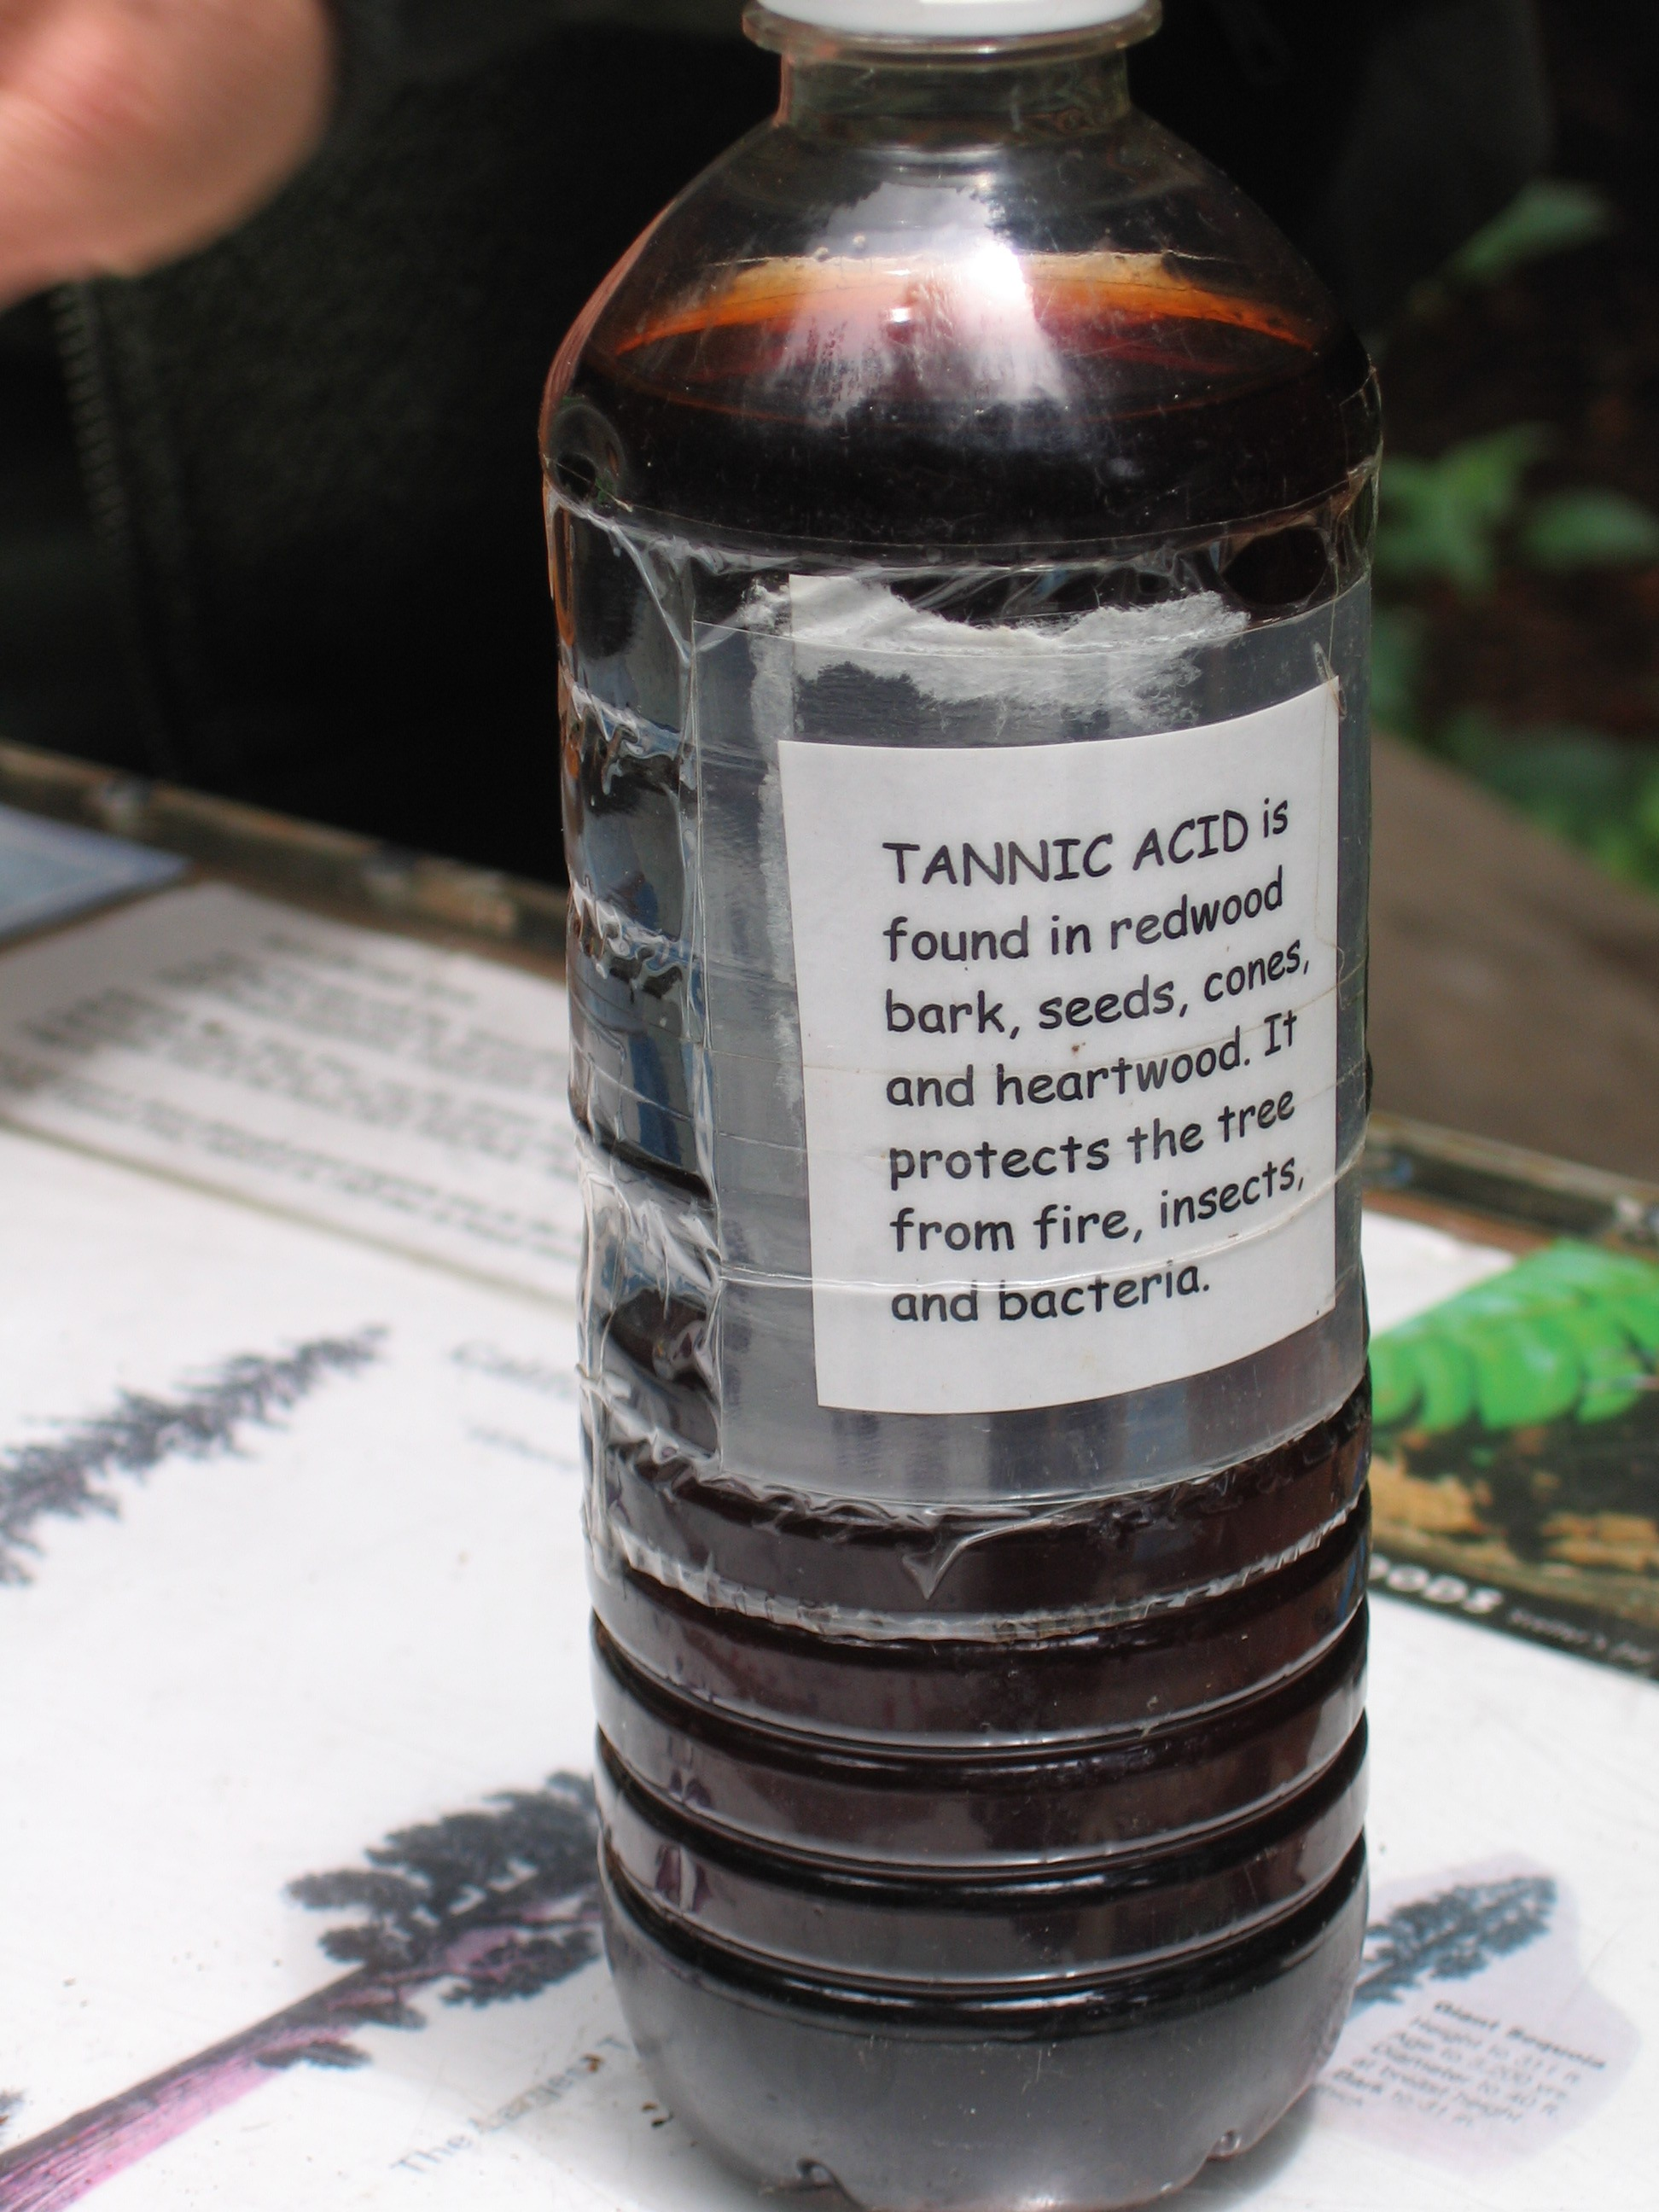 A bottle of tannic acid solution in water.